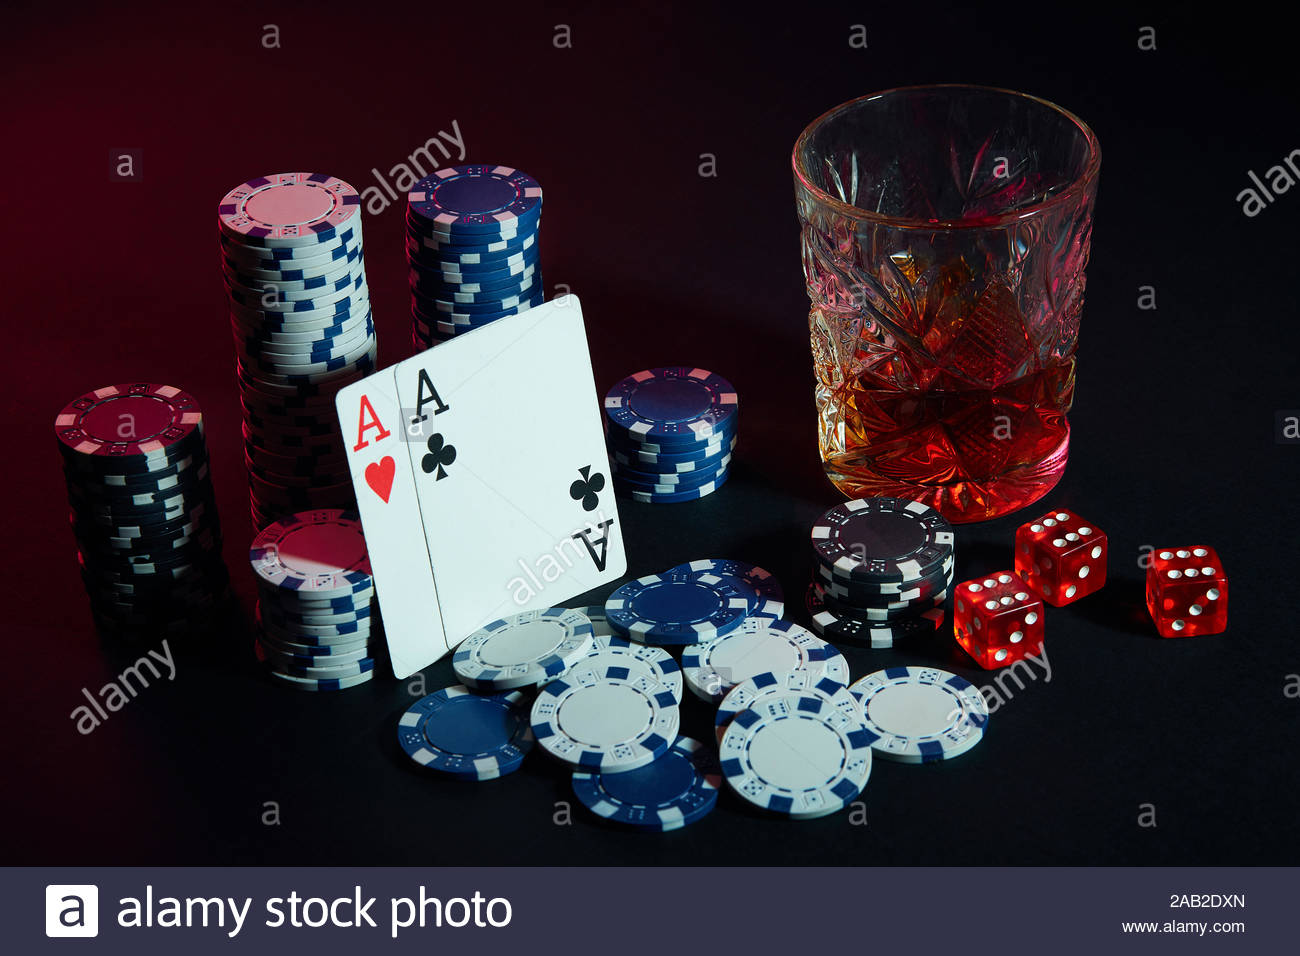 Questions You have to Ask About Casino